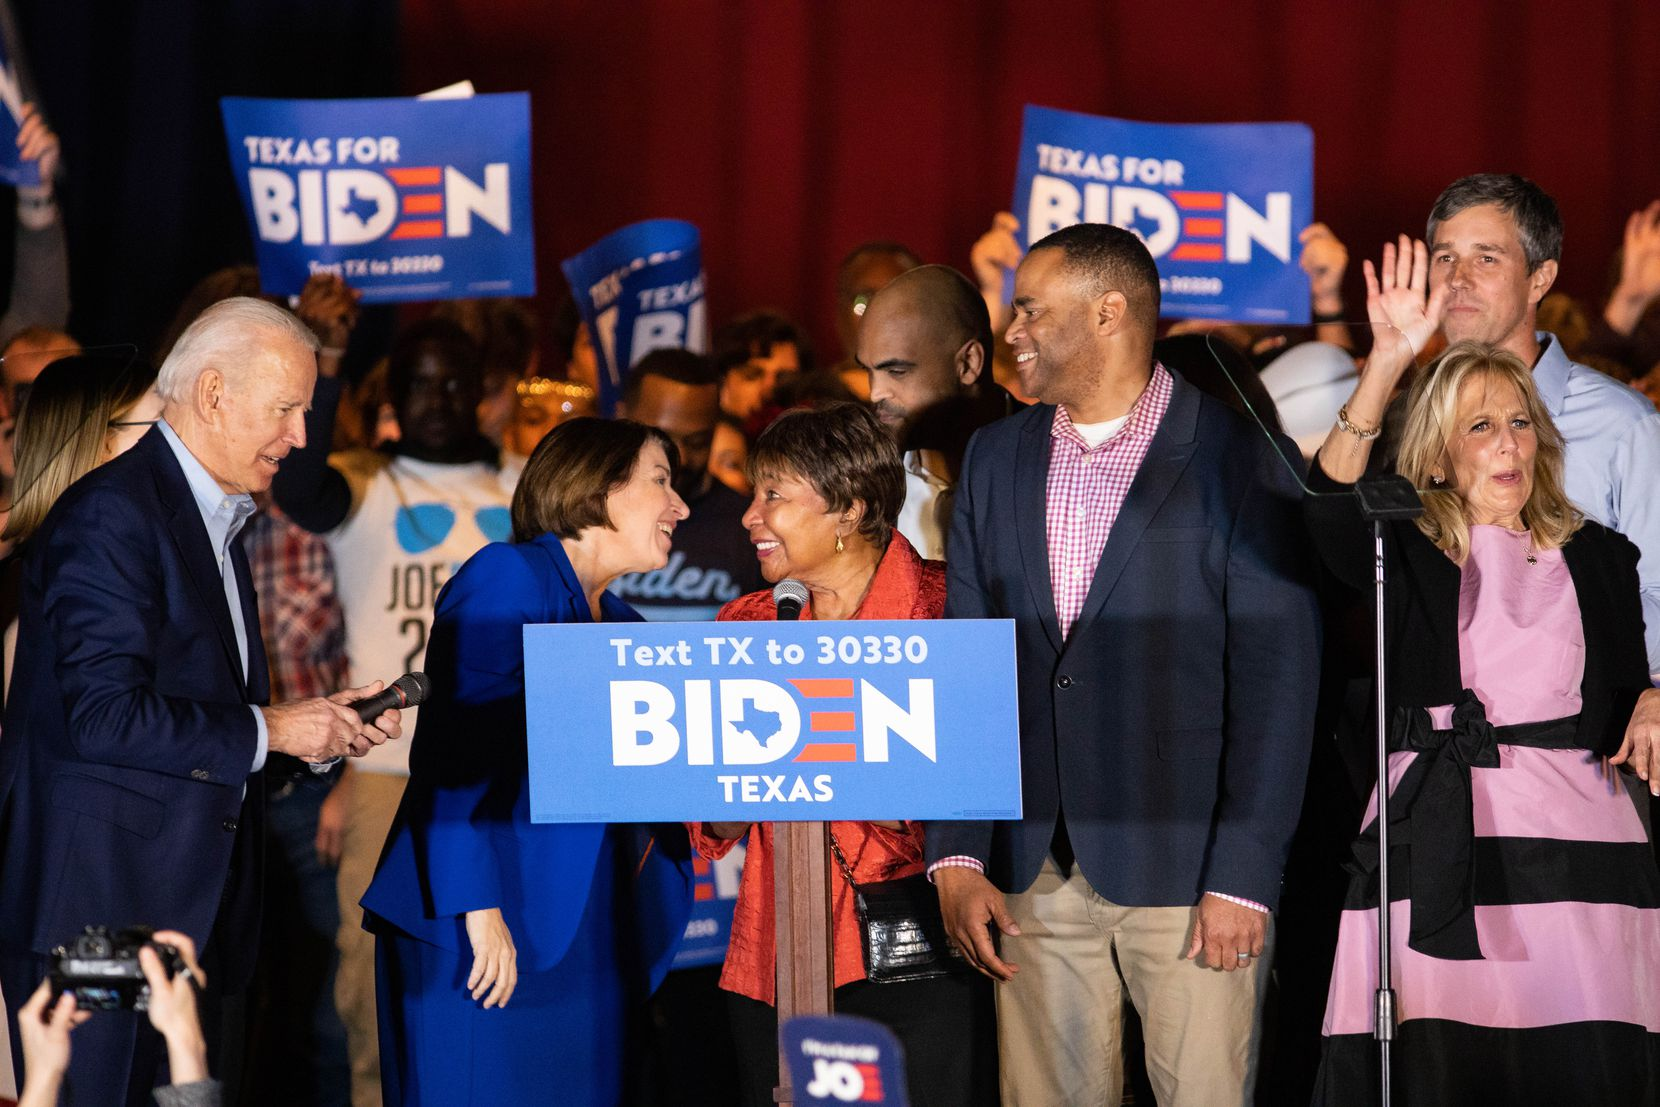 Democratic presidential primary candidate Joe Biden (far left) is endored by (from left) Sen. Amy Klobuchar (D-MN), Rep. Eddie Bernice Johnson (D-Dallas), Rep. Colin Allred (D-Dallas), Rep. Mark Veasey (D-Fort Worth), and former Rep. Beto O'Rourke during a rally held at Gilley's in Dallas on March. 2, 2020. Biden's wife Jill is at far right.